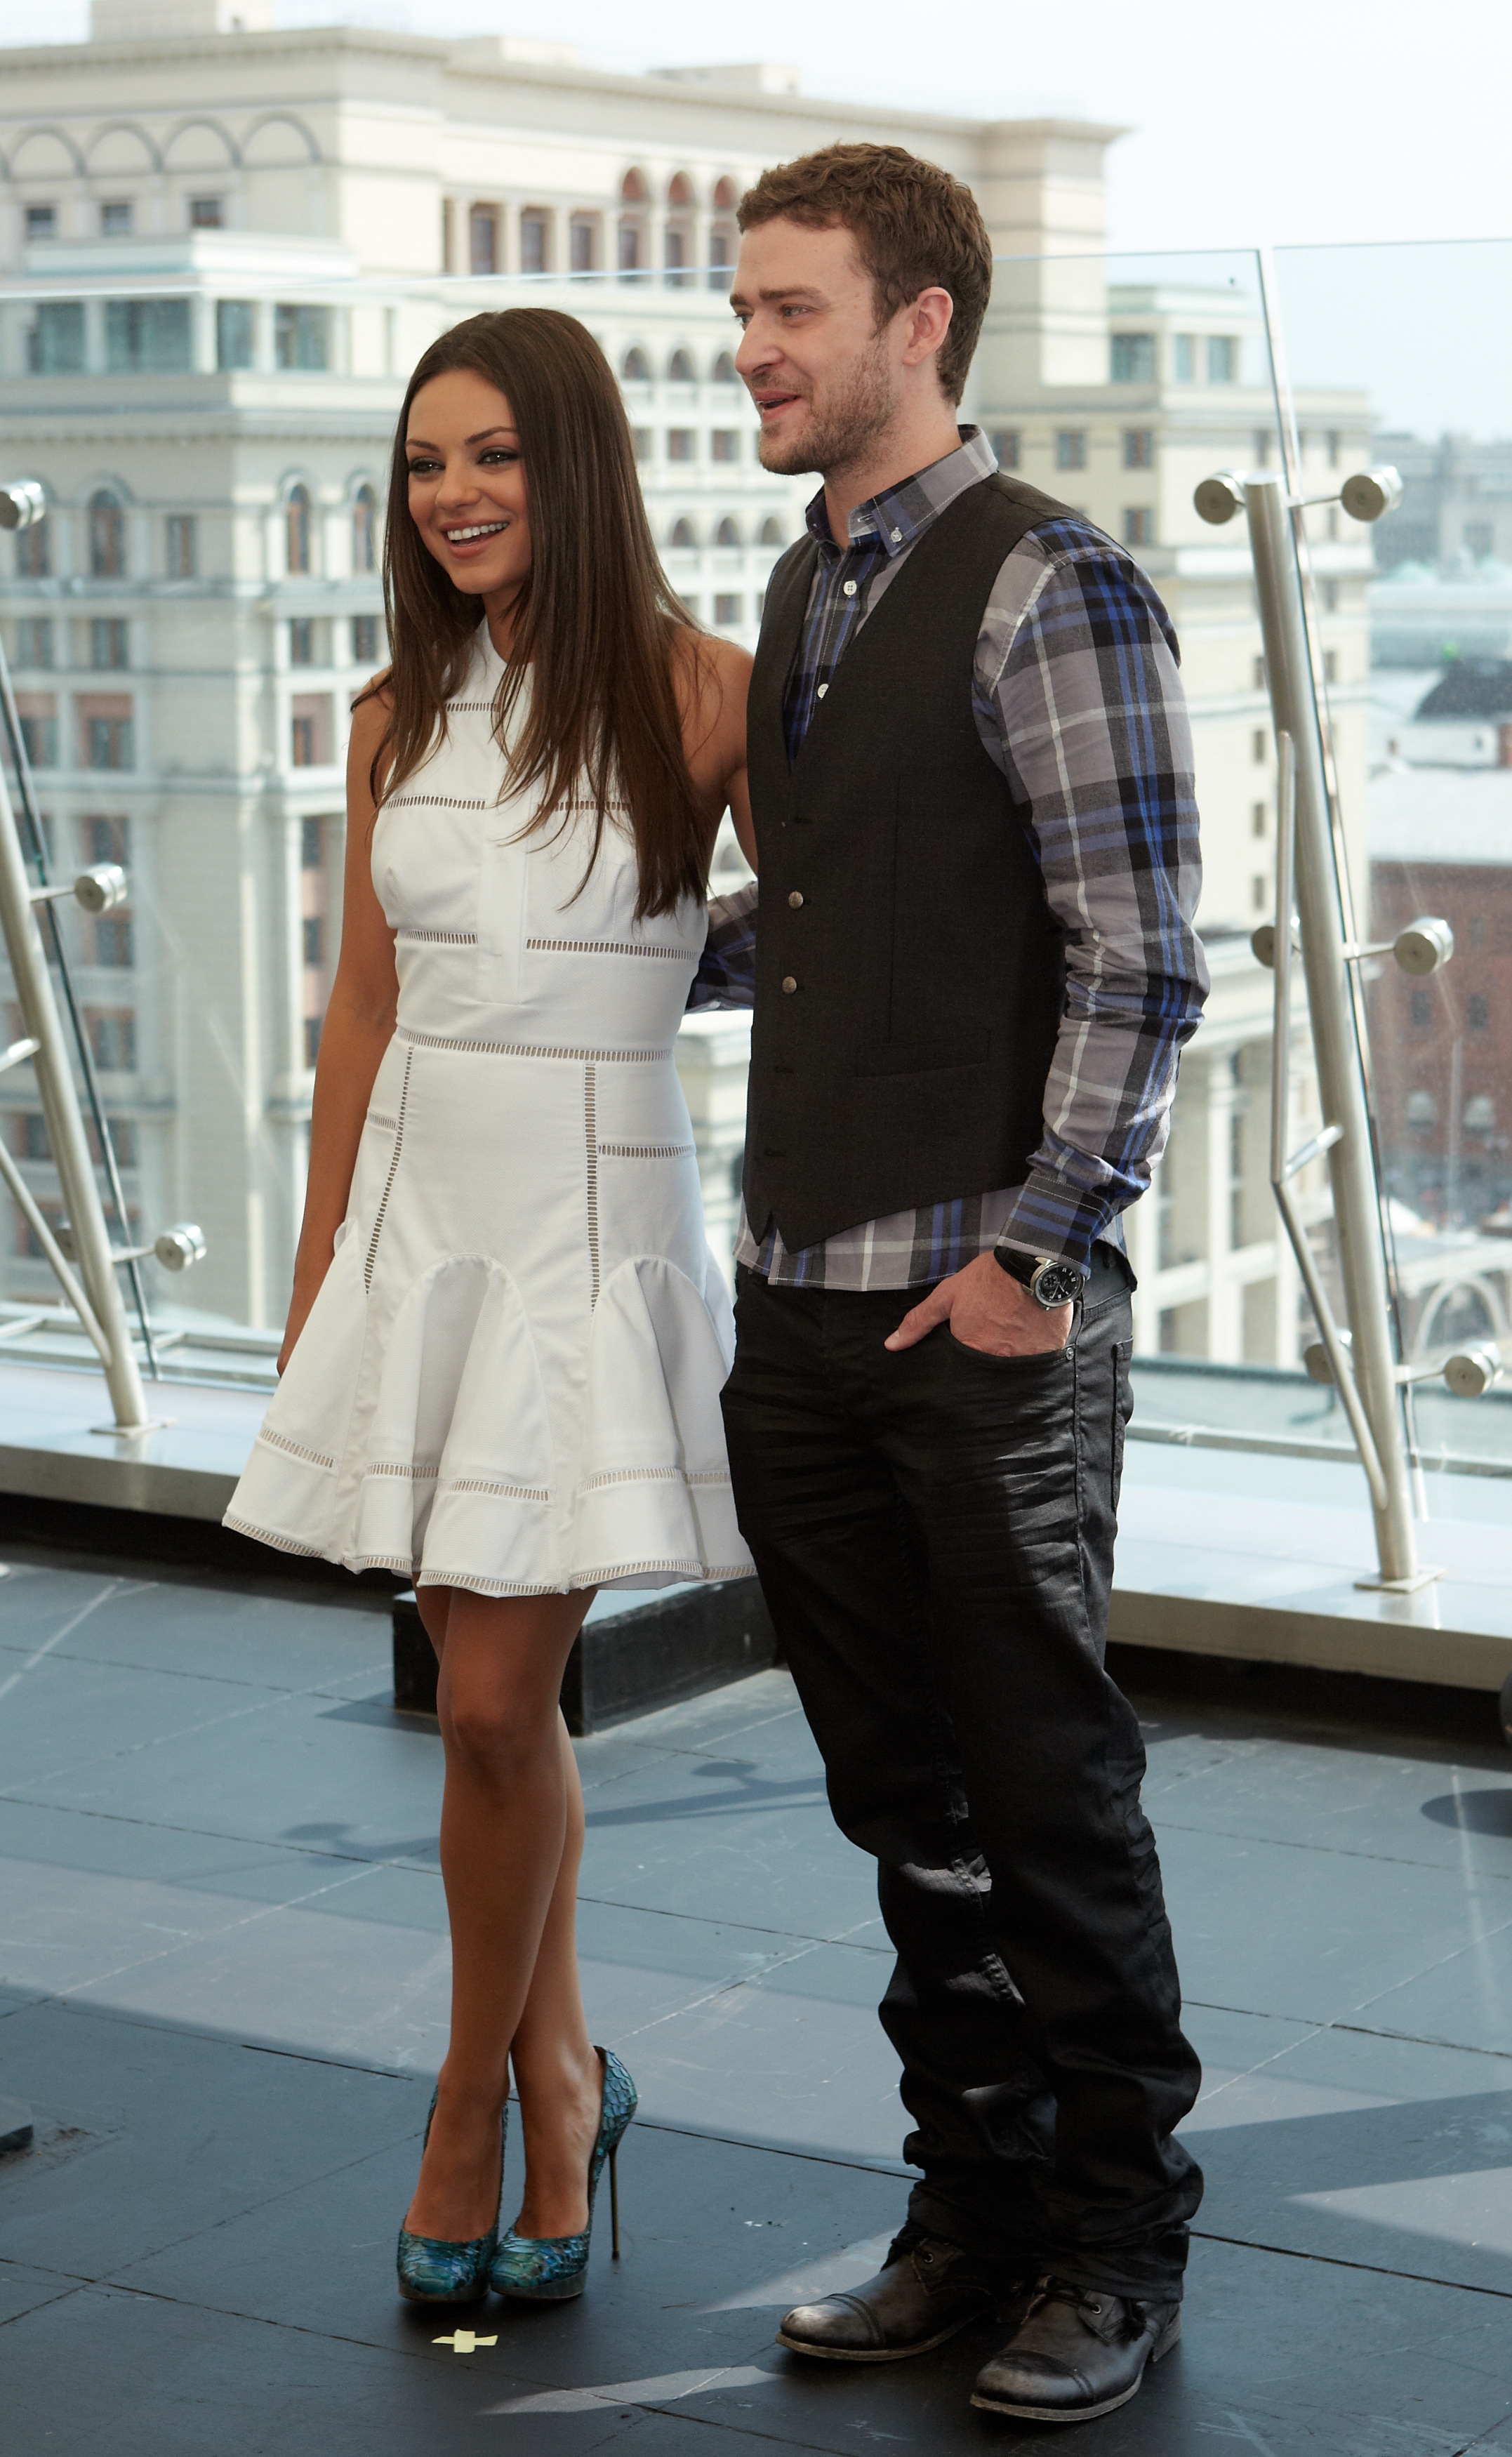 Justin Timberlake wears a plaid shirt and a vest.